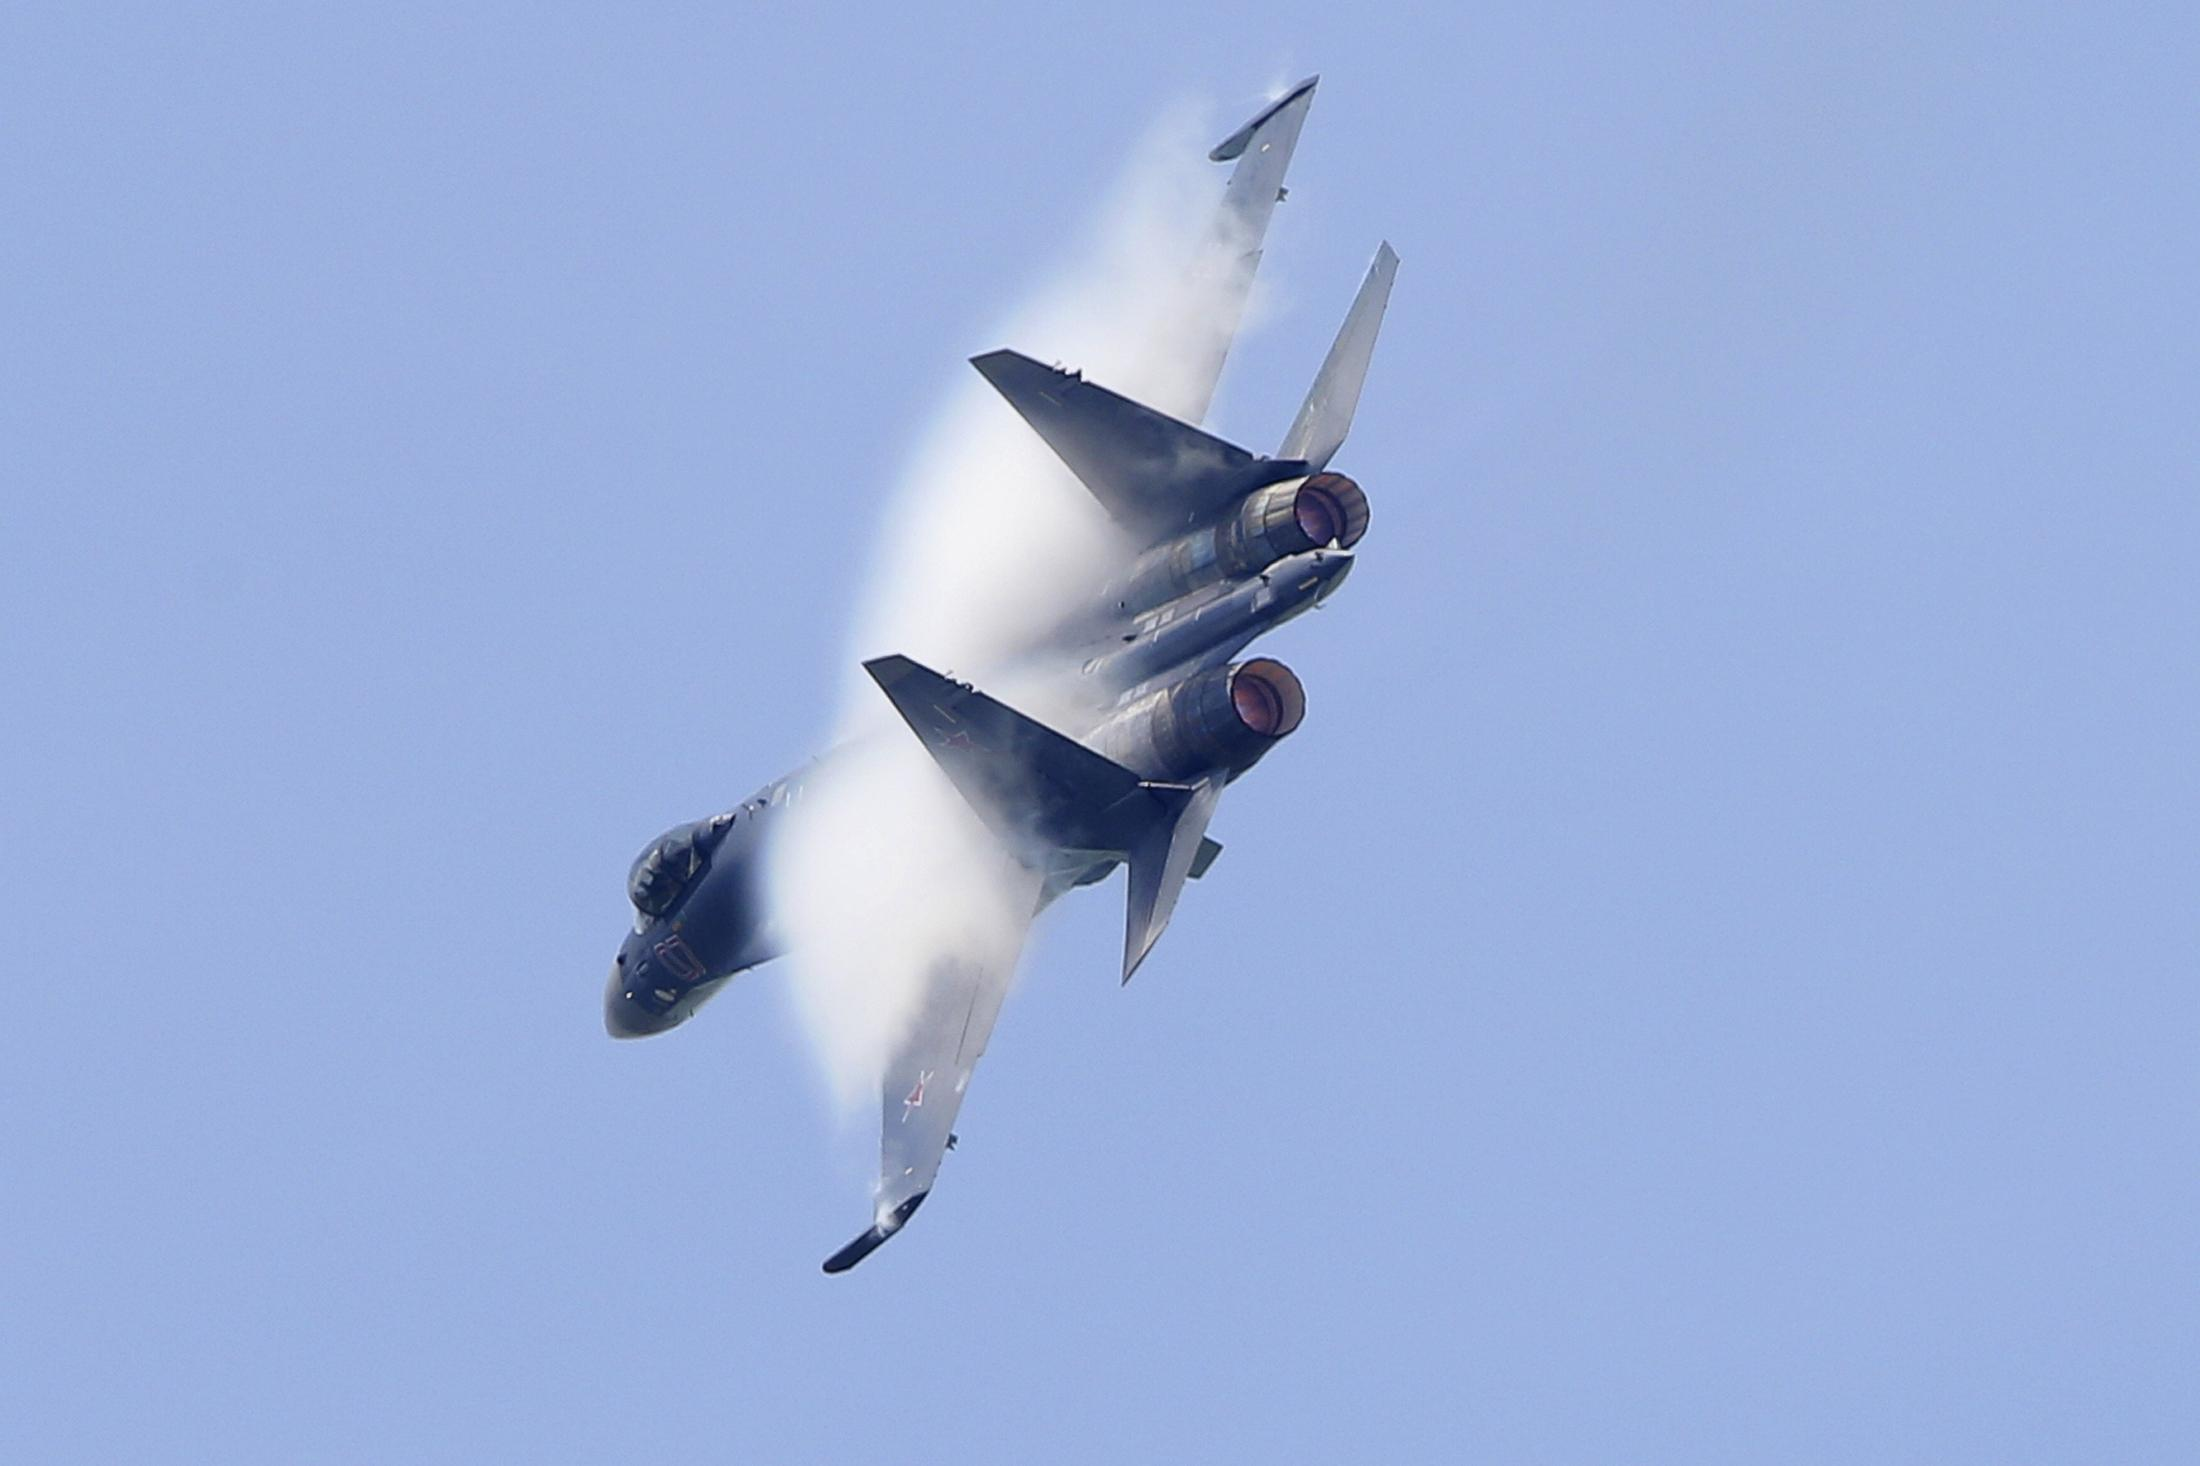 The Sukhoi Su-35 Flanker-E maneuvers during the Paris air show.